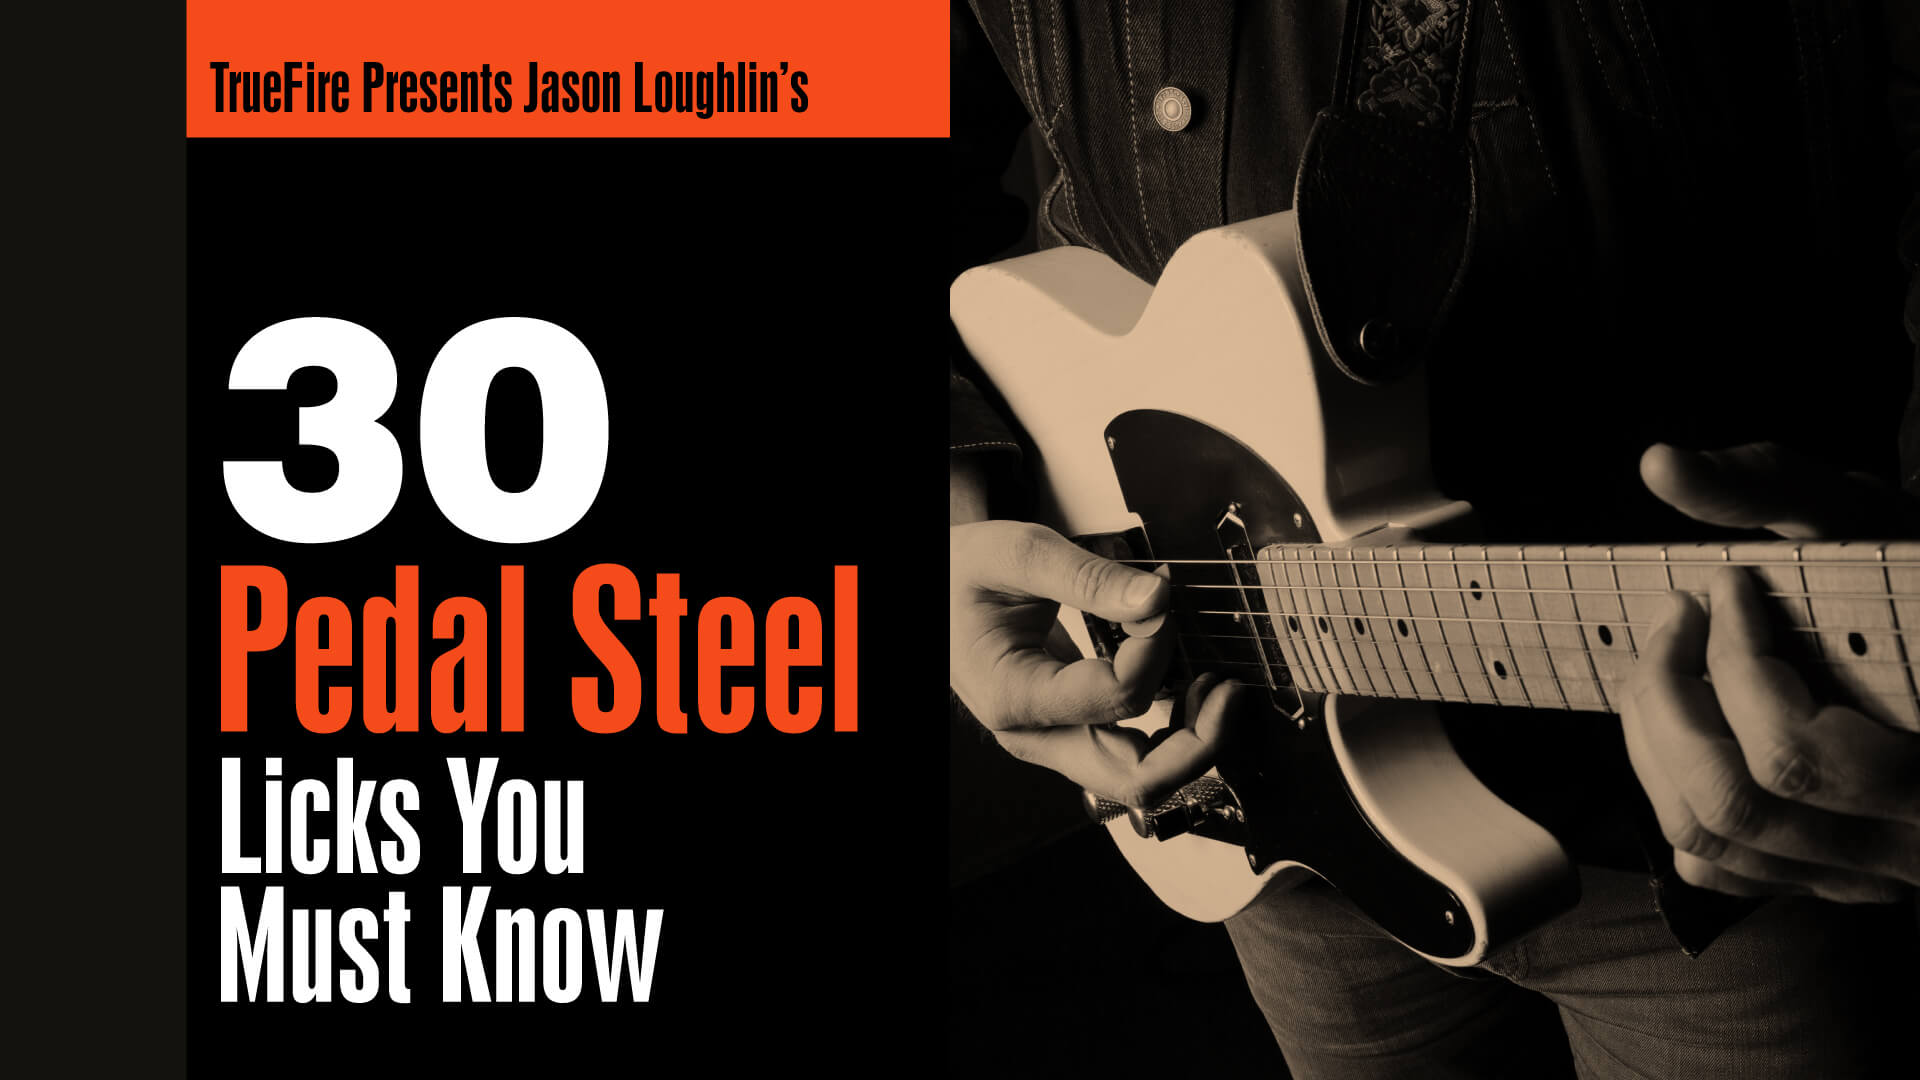 30 Pedal Steel Licks You MUST Know - Guitar Lessons - Jason Loughlin -  TrueFire